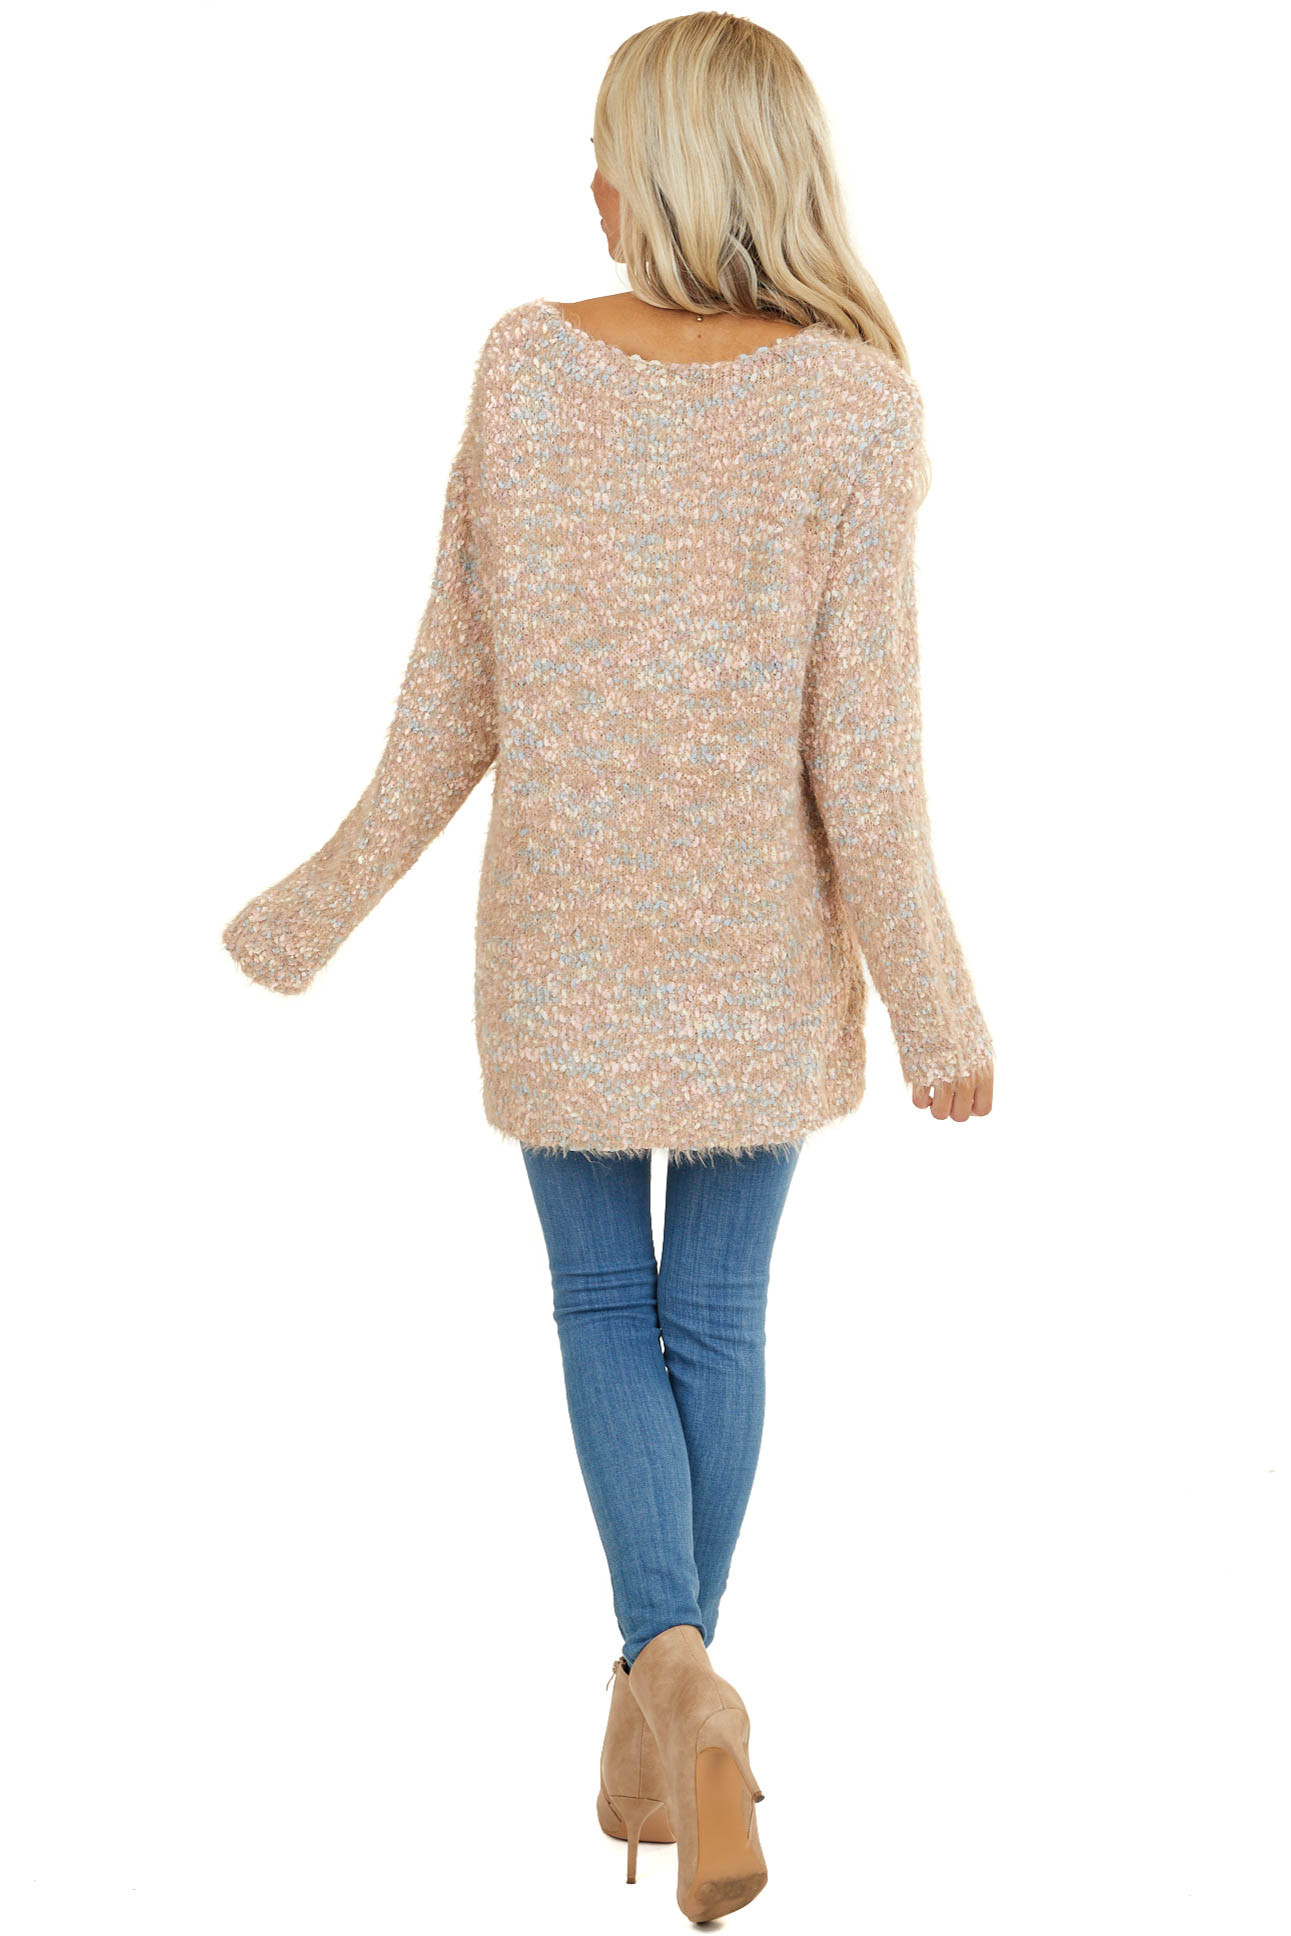 Toffee Speckled Super Soft Long Sleeve Sweater Top